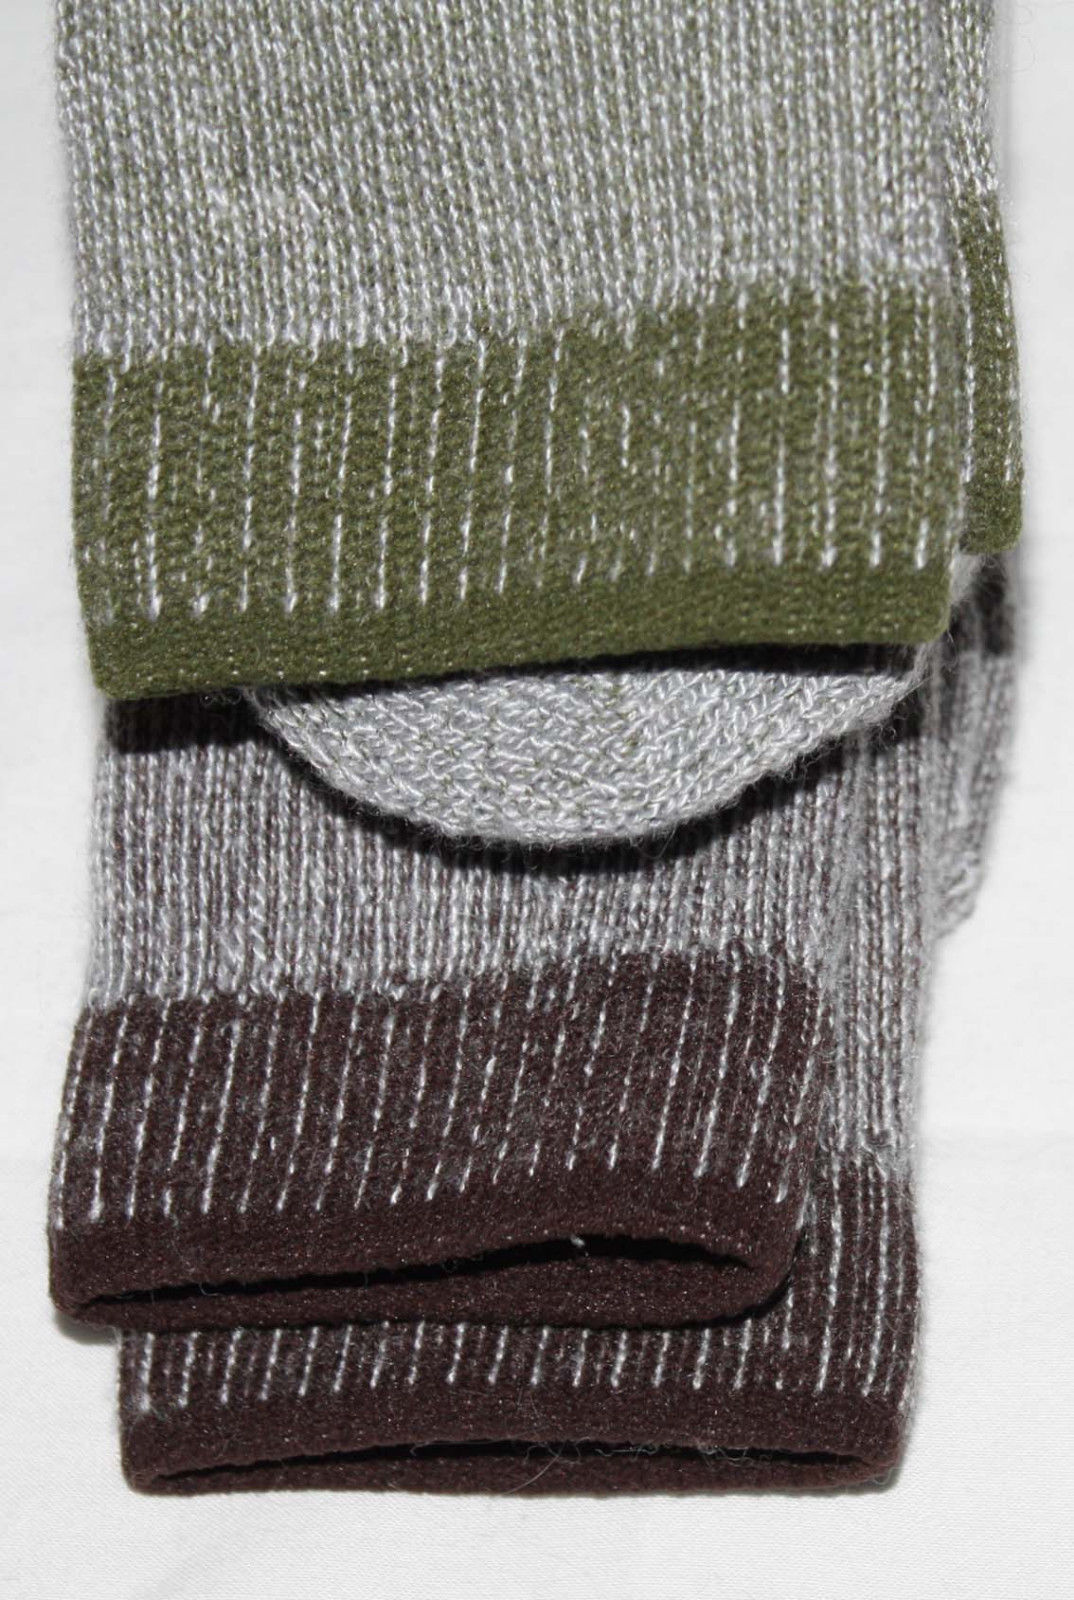 brown & olive socks edge